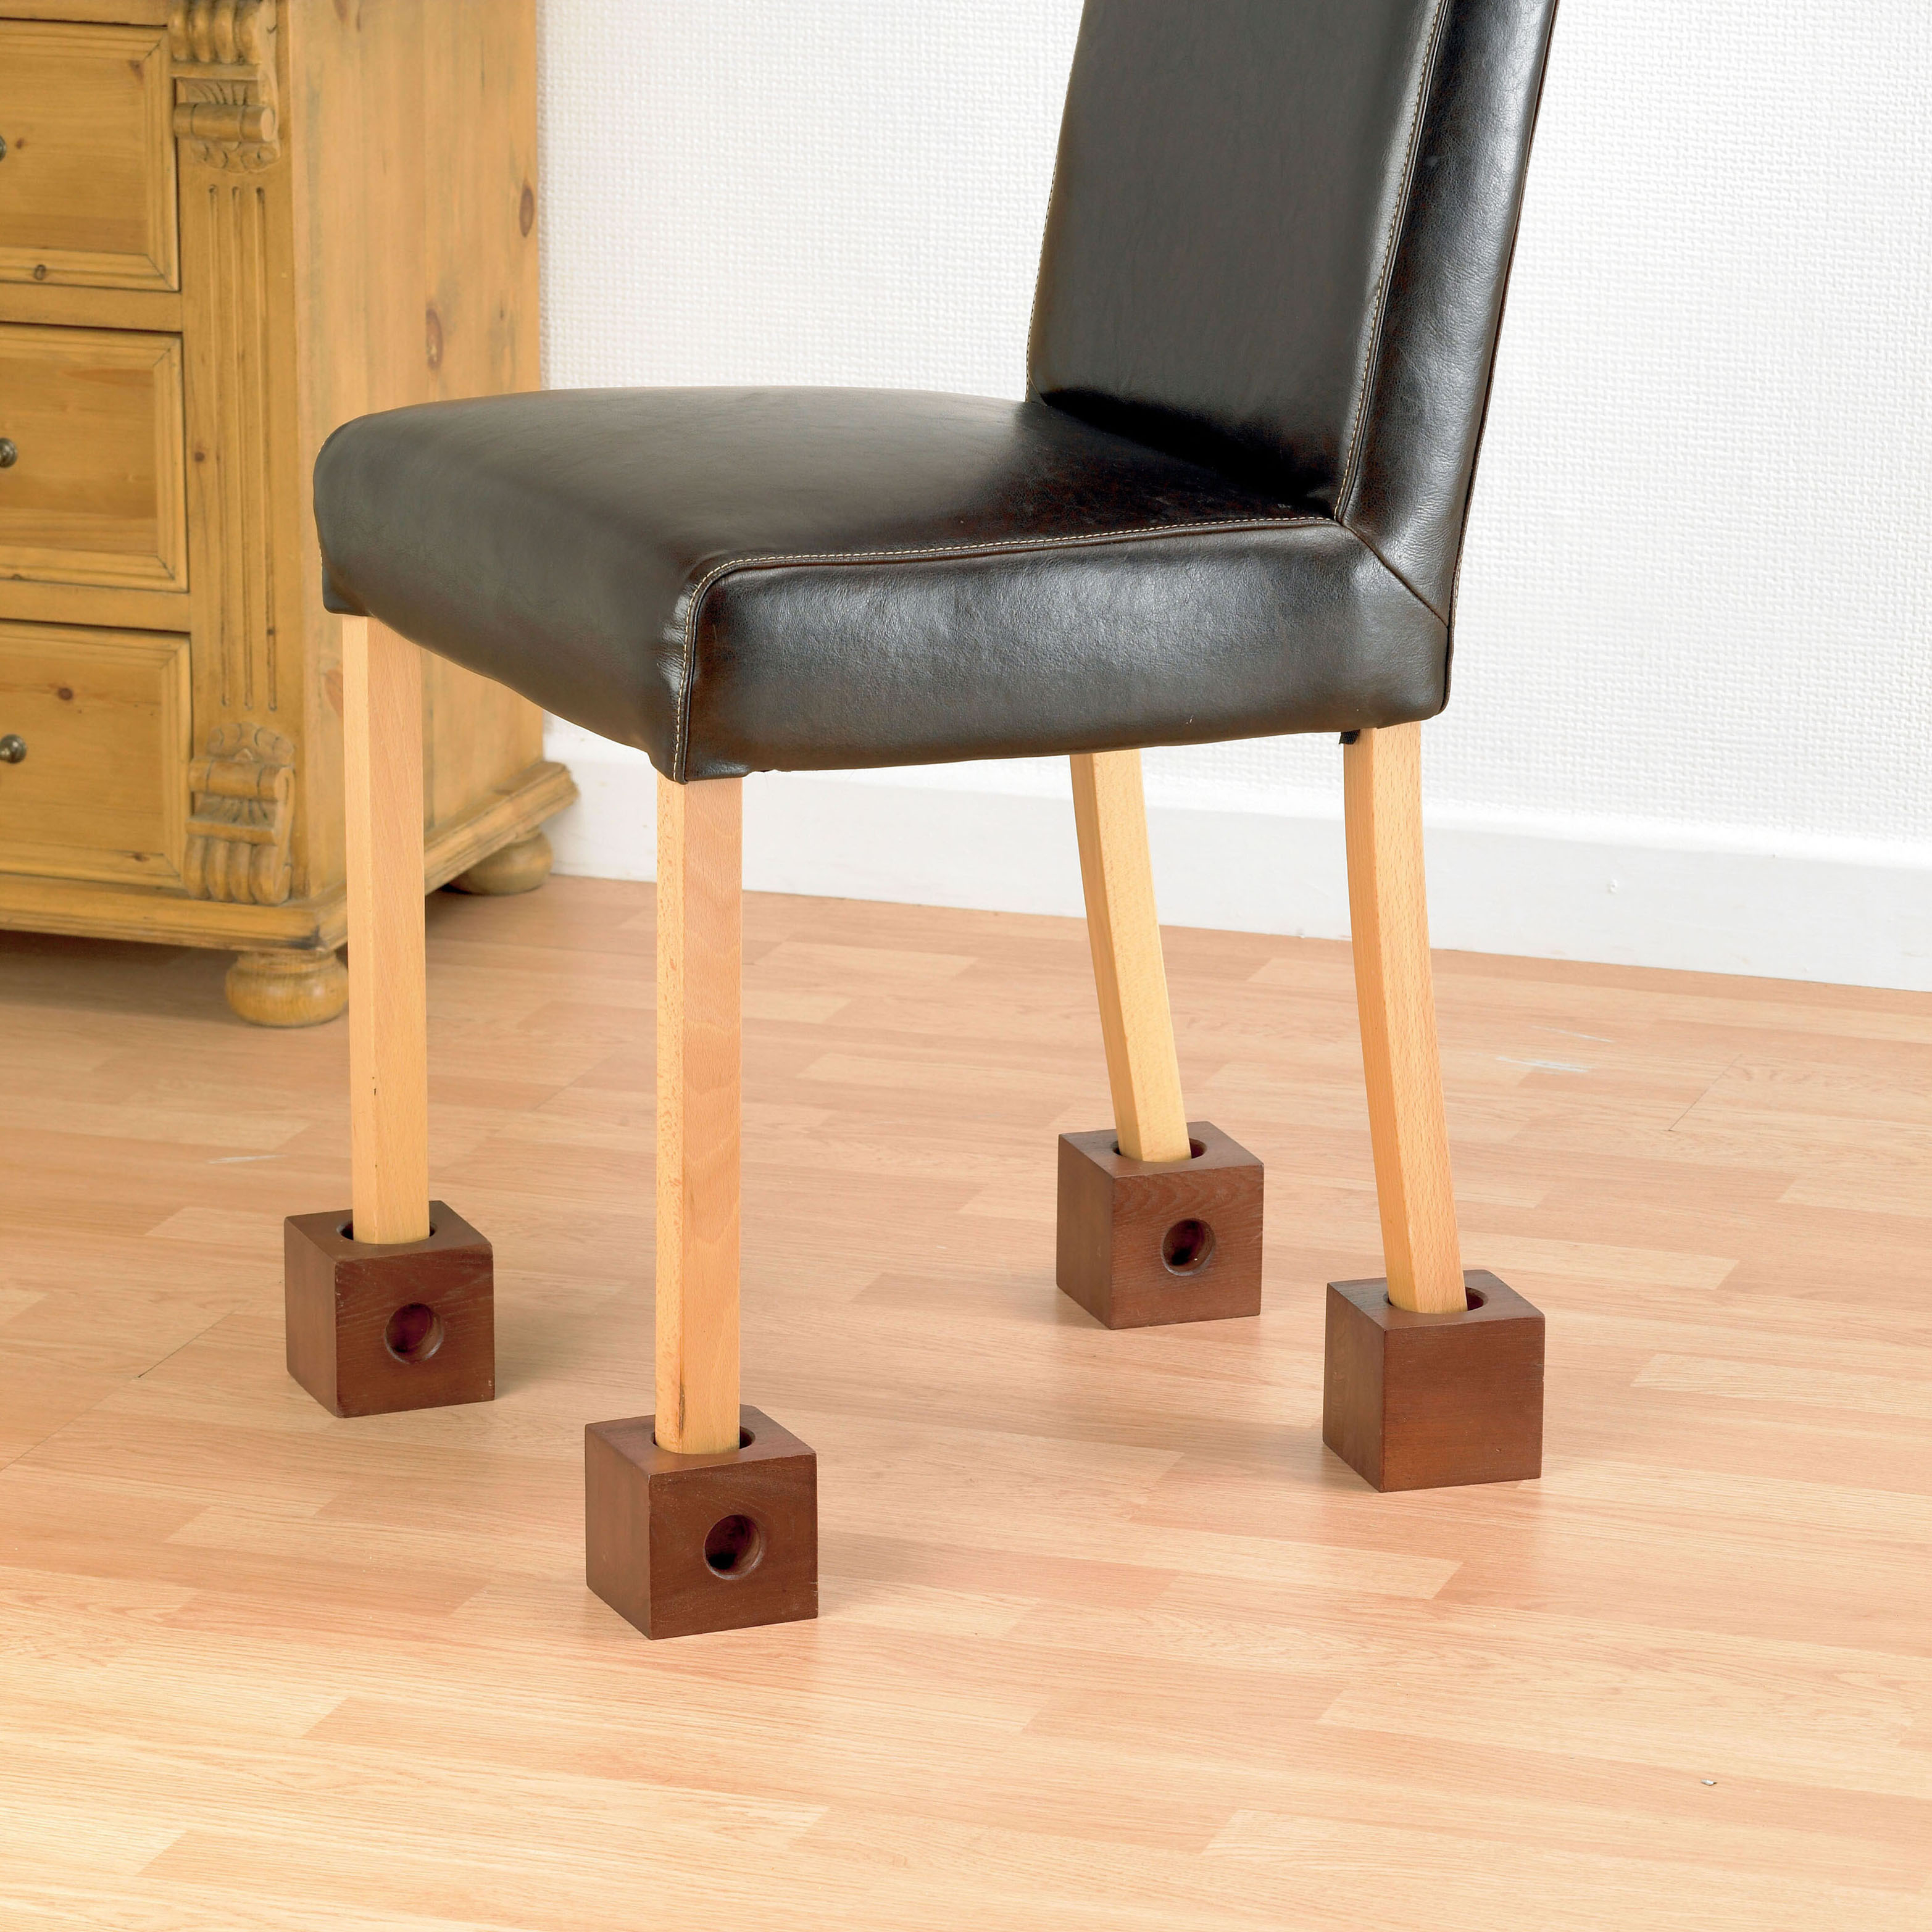 Wooden Chair Raisers (set of 4 4) 3.5 inches